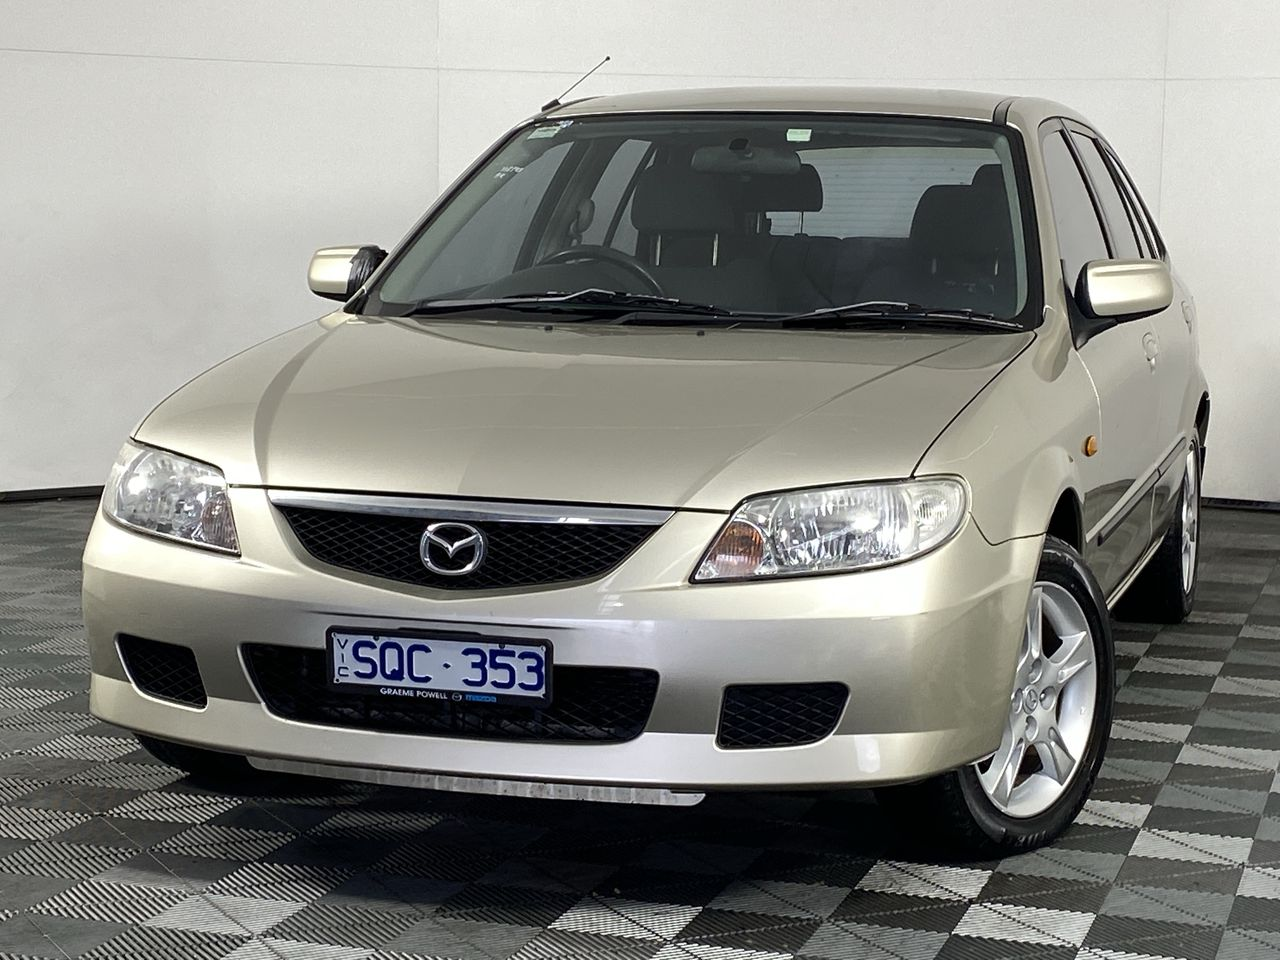 2003 Mazda 323 Astina Shades BJ Automatic Hatchback